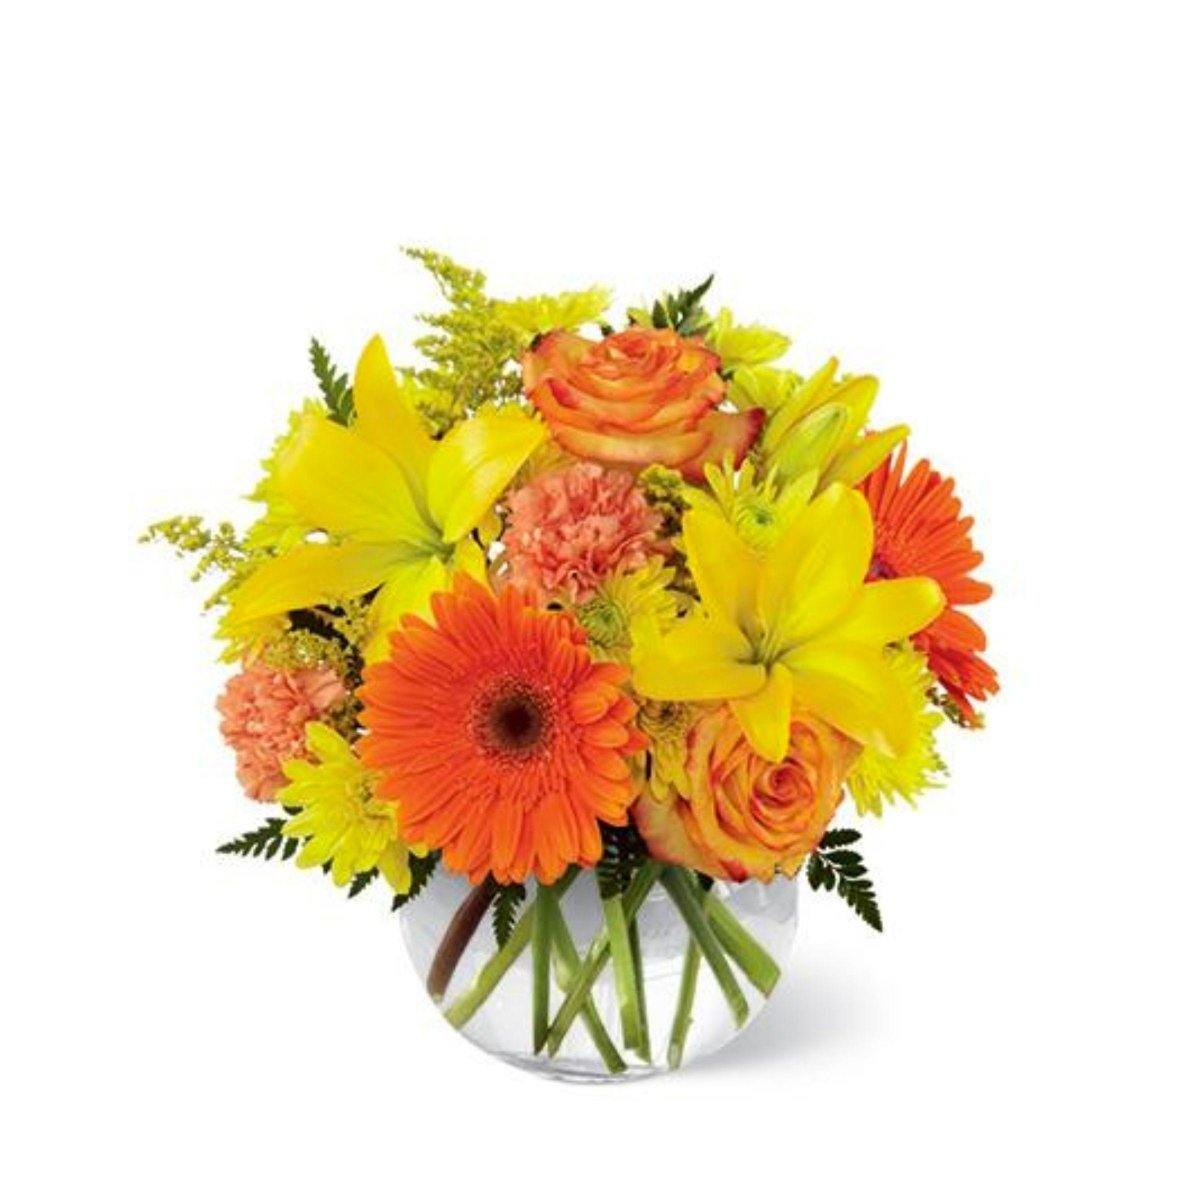 The FTD® Vibrant Views Bouquet in a Bubble Bowl - Shalimar Flower Shop